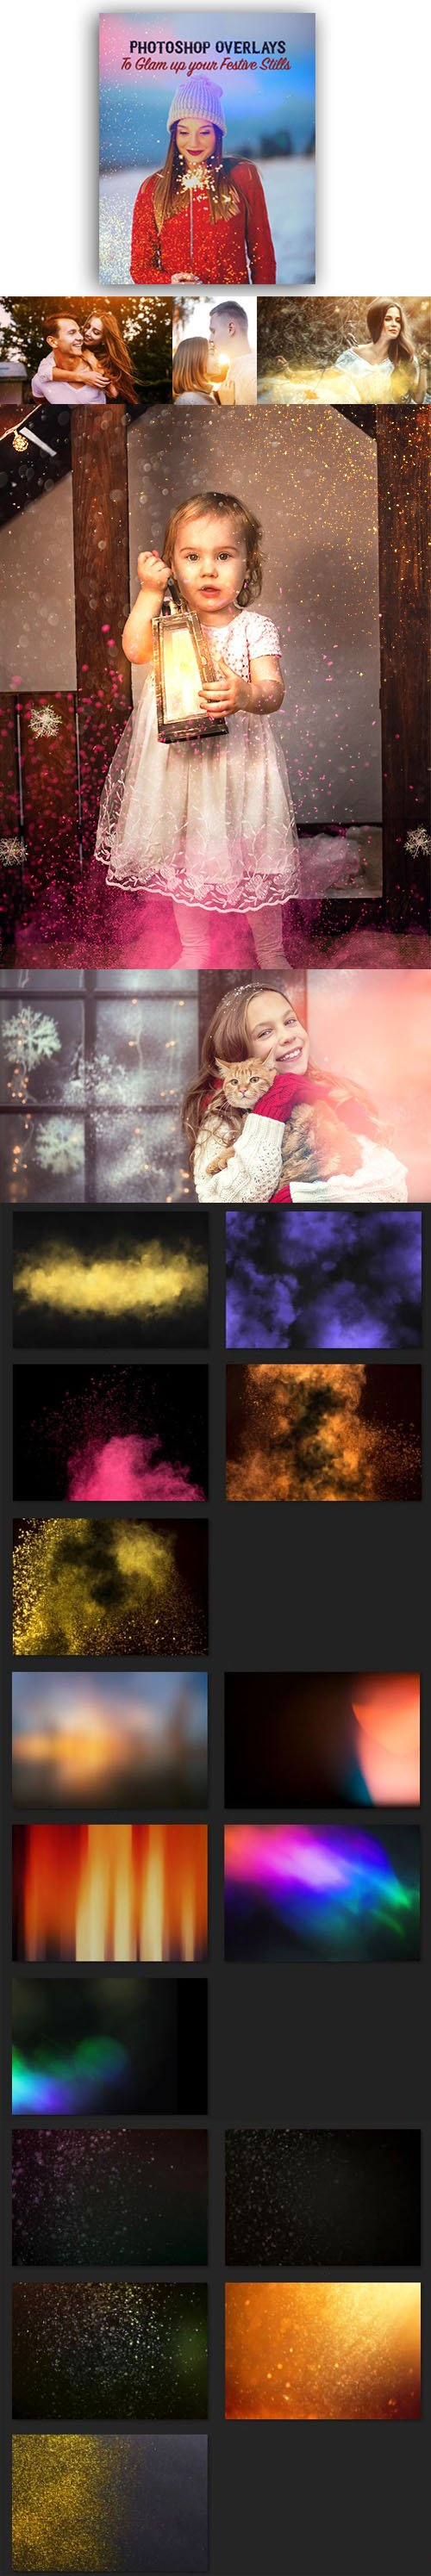 Photoshop Overlays for Holidays & Special Days